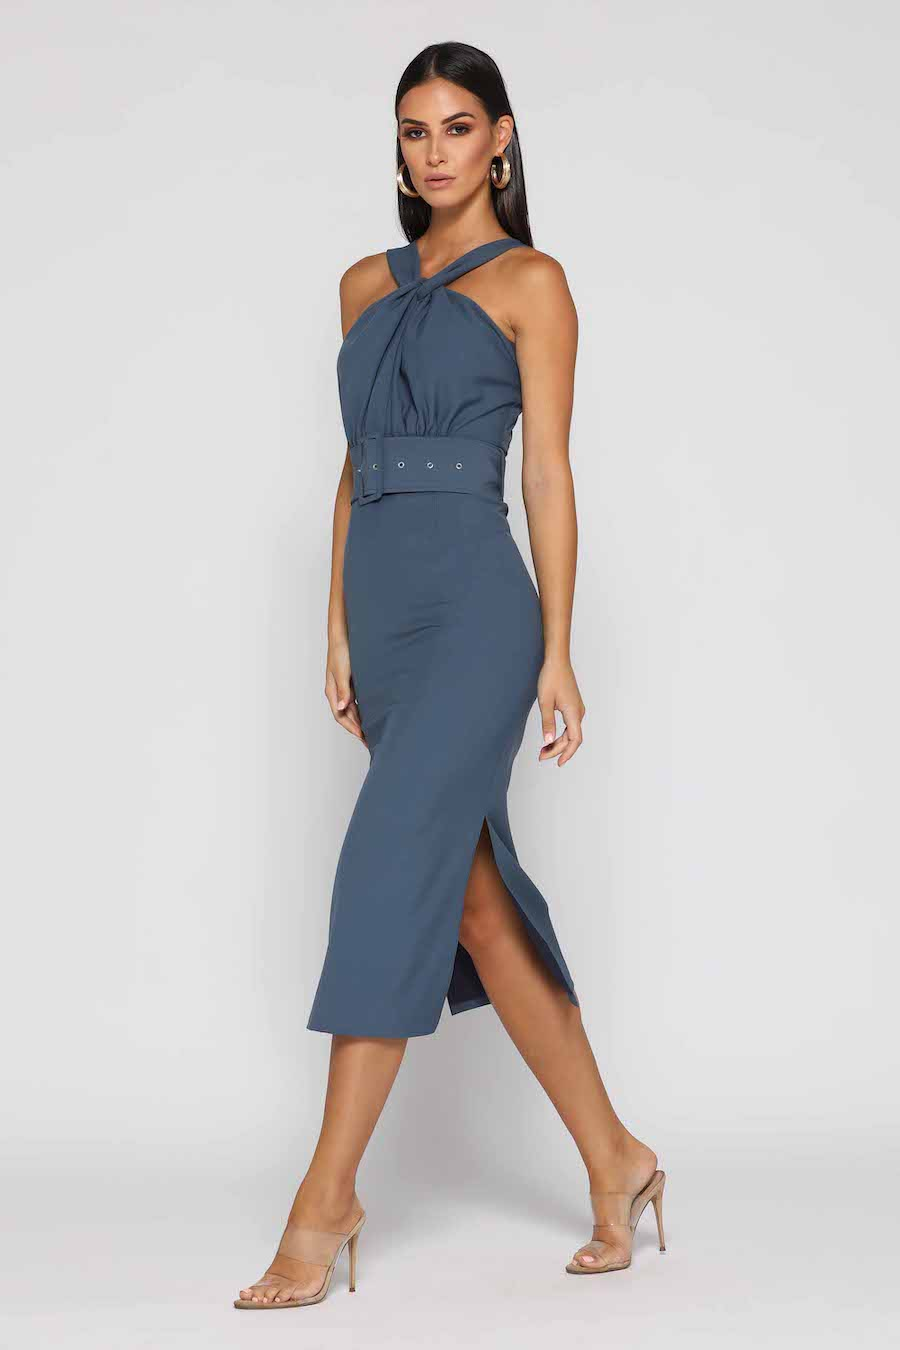 Steel Blue Stunning cocktail halter style dress with wide belt